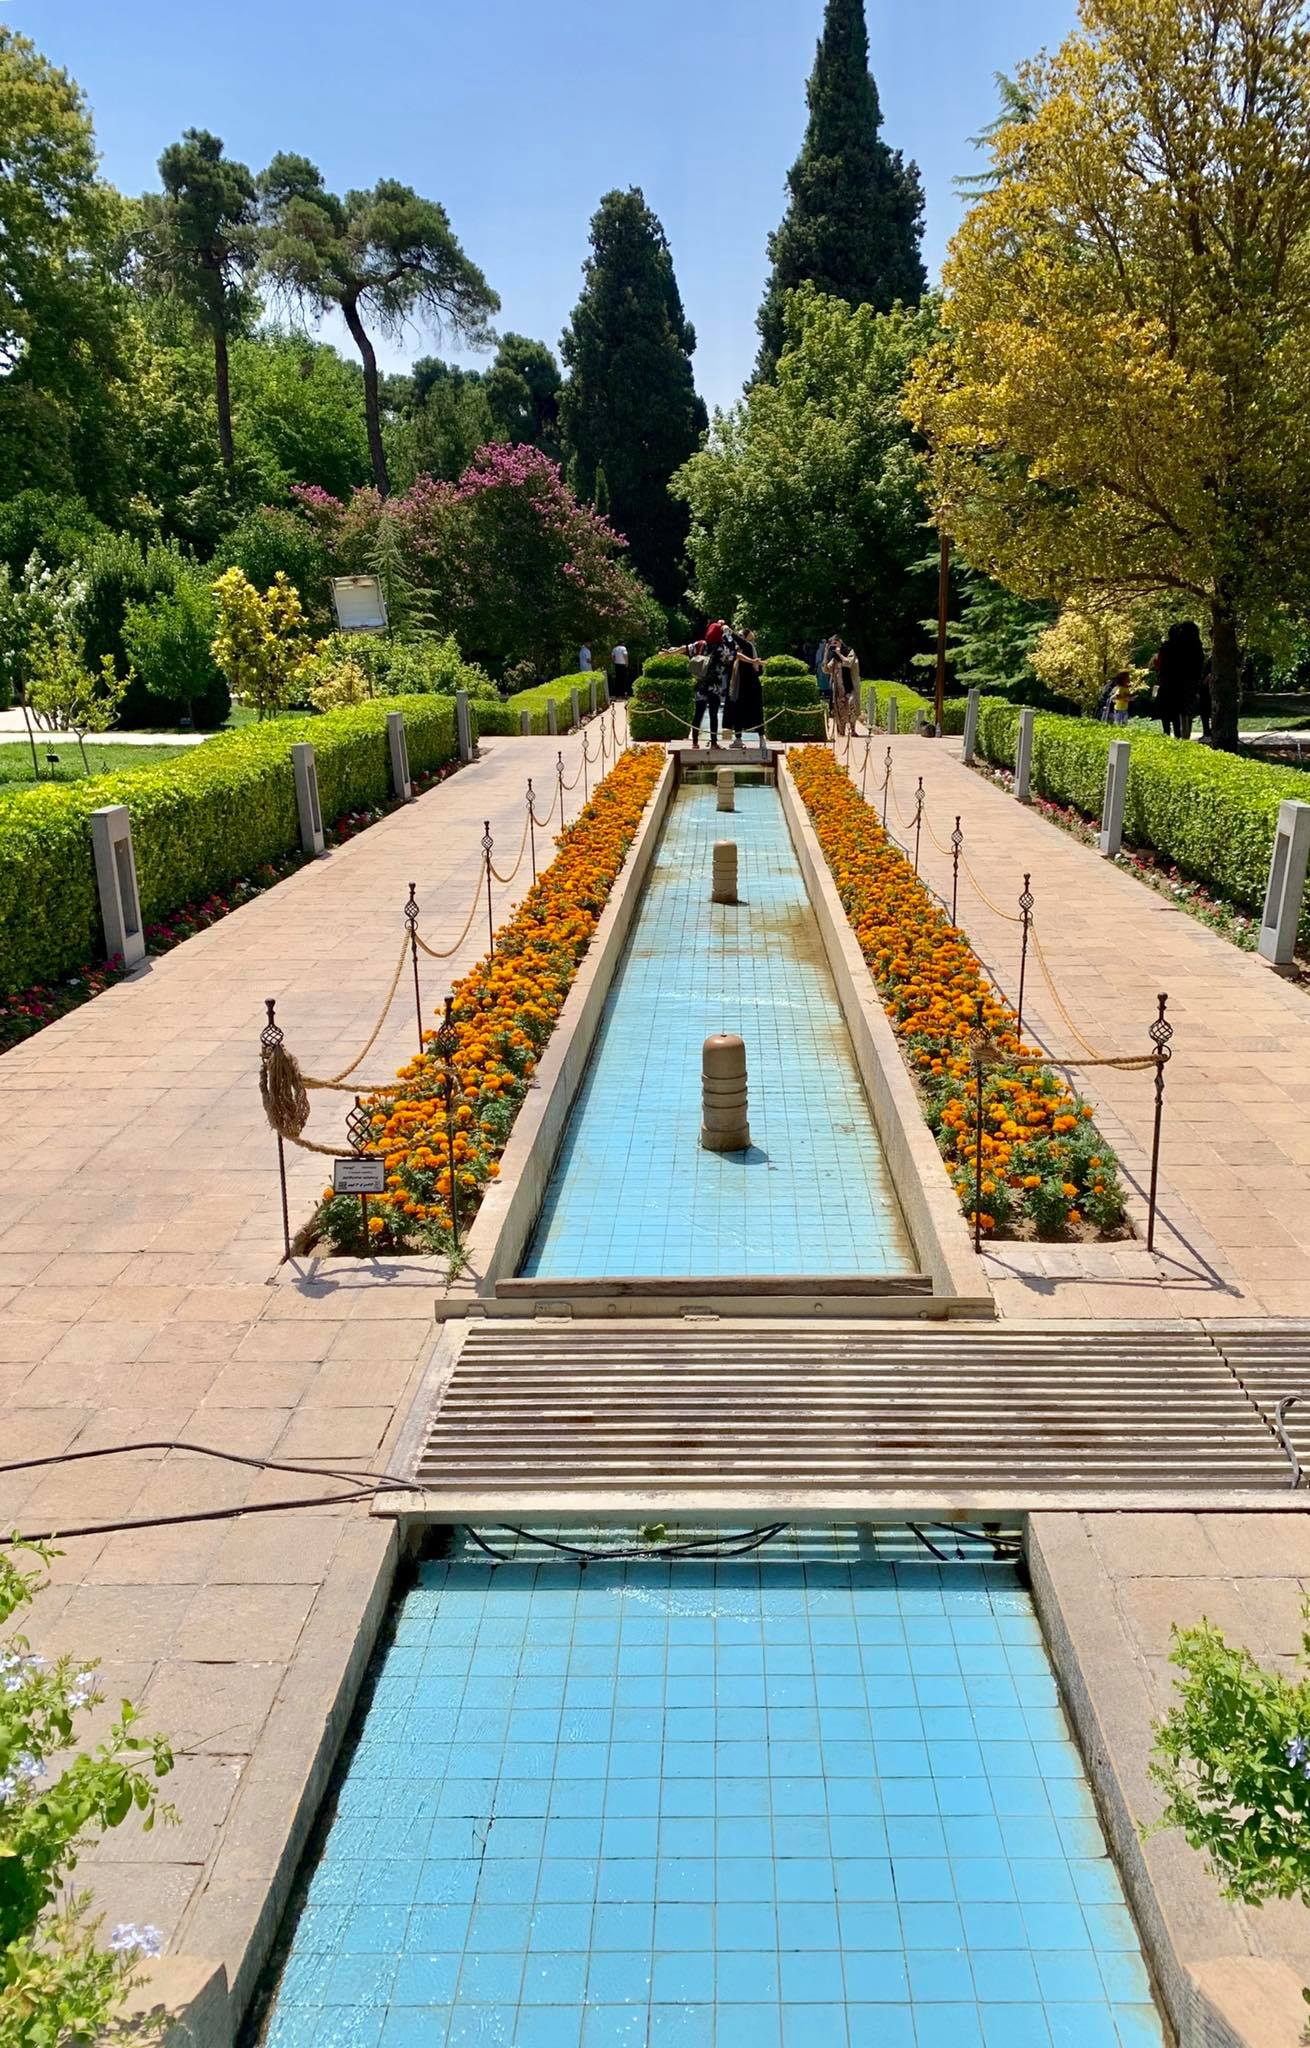 Kach Solo Travels in 2019 Full day tour of Shiraz31.jpg